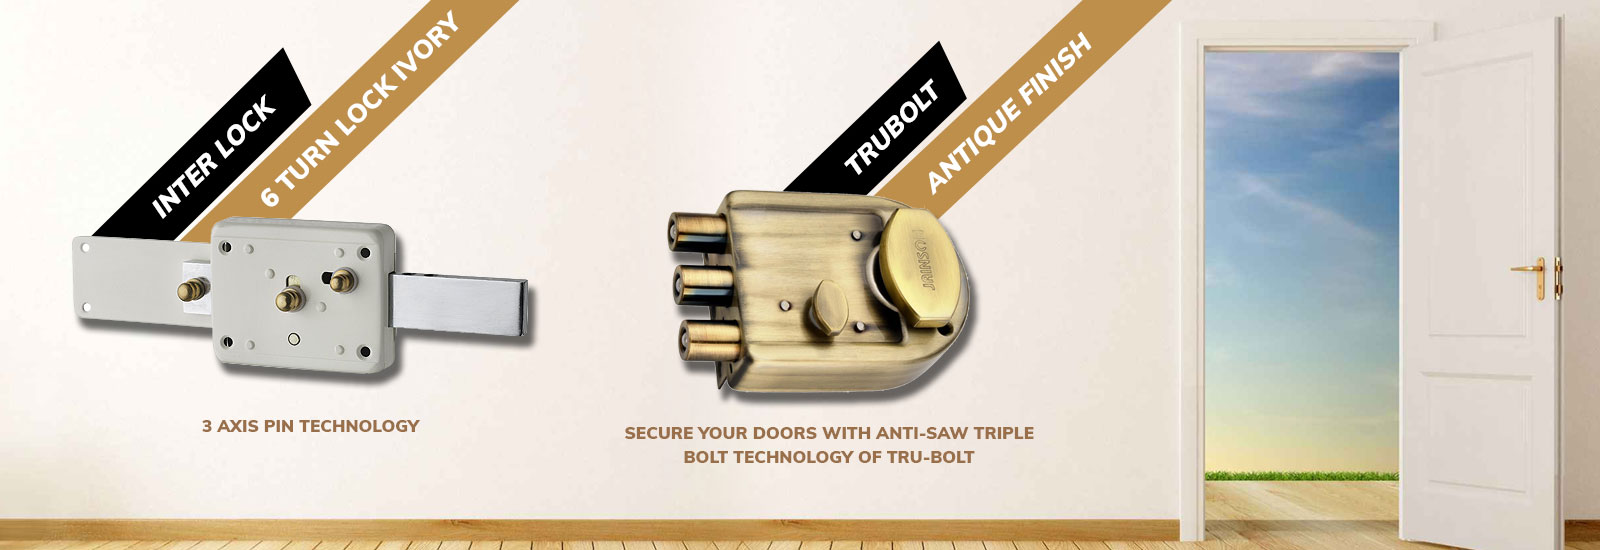 Jainson Locks Home Page Banner - Main Door Locks - Inter Lock Square and Trubolt Locks for Main Door